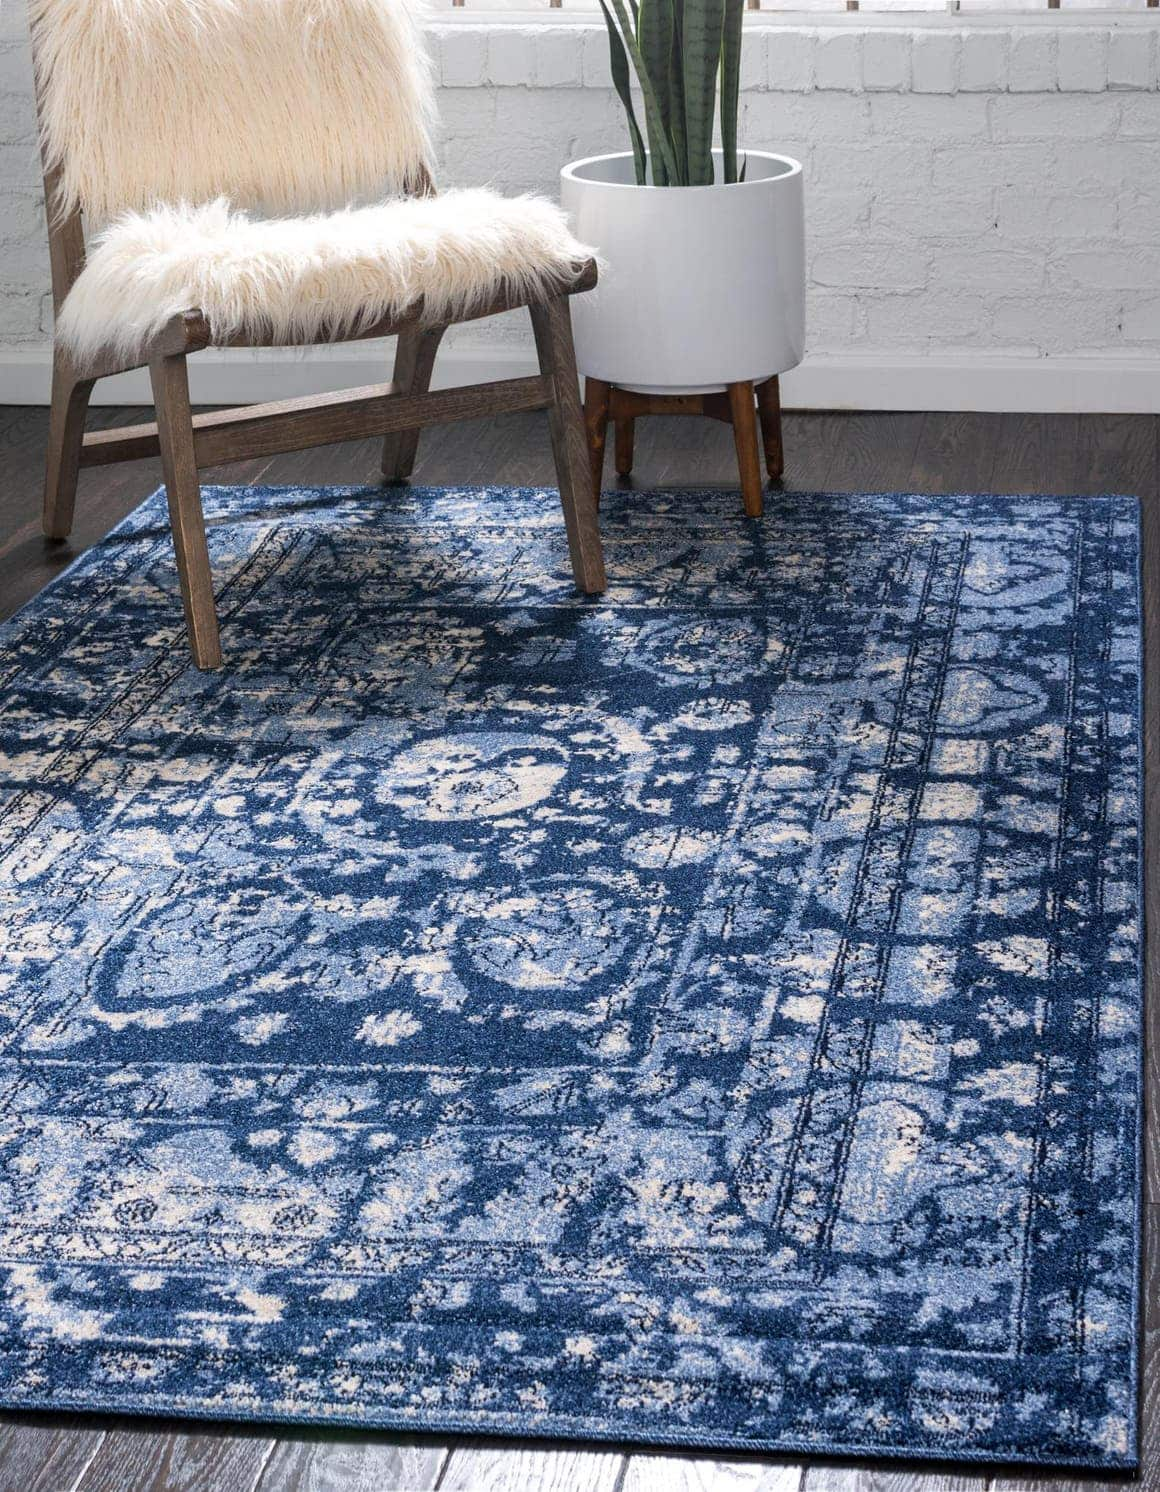 Use a Cool Blue Rug on Dark Wood for a Chic Vibe